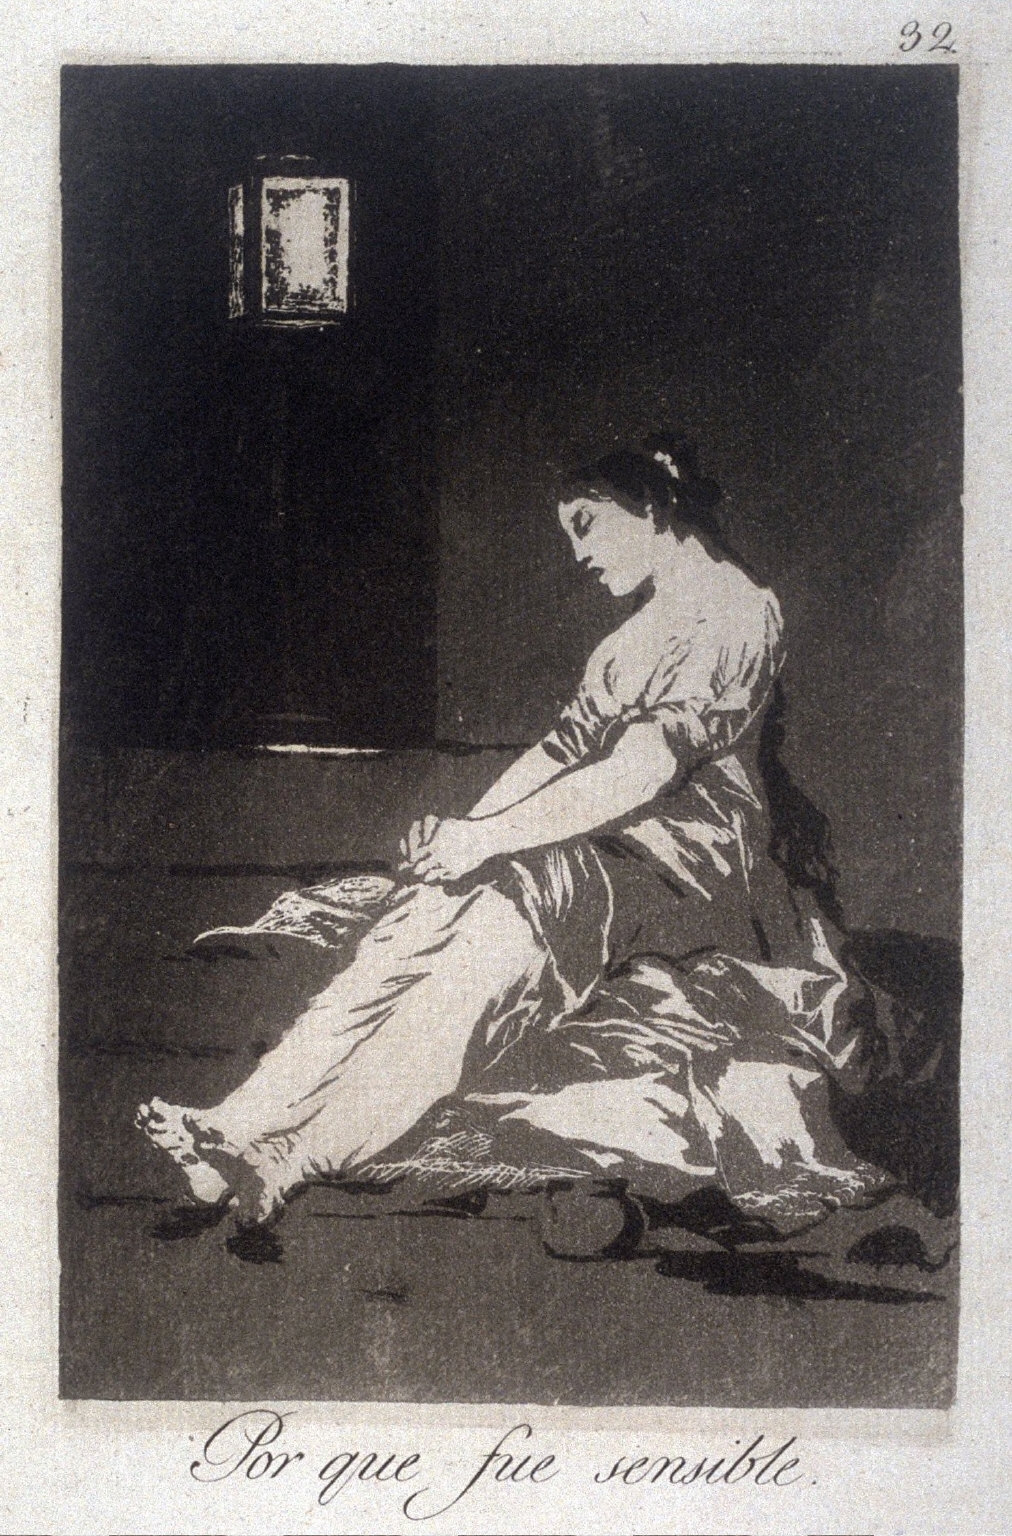 Po que fue sensible (Because She Was Susceptible), plate 32 from the series Los Caprichos (Caprices)